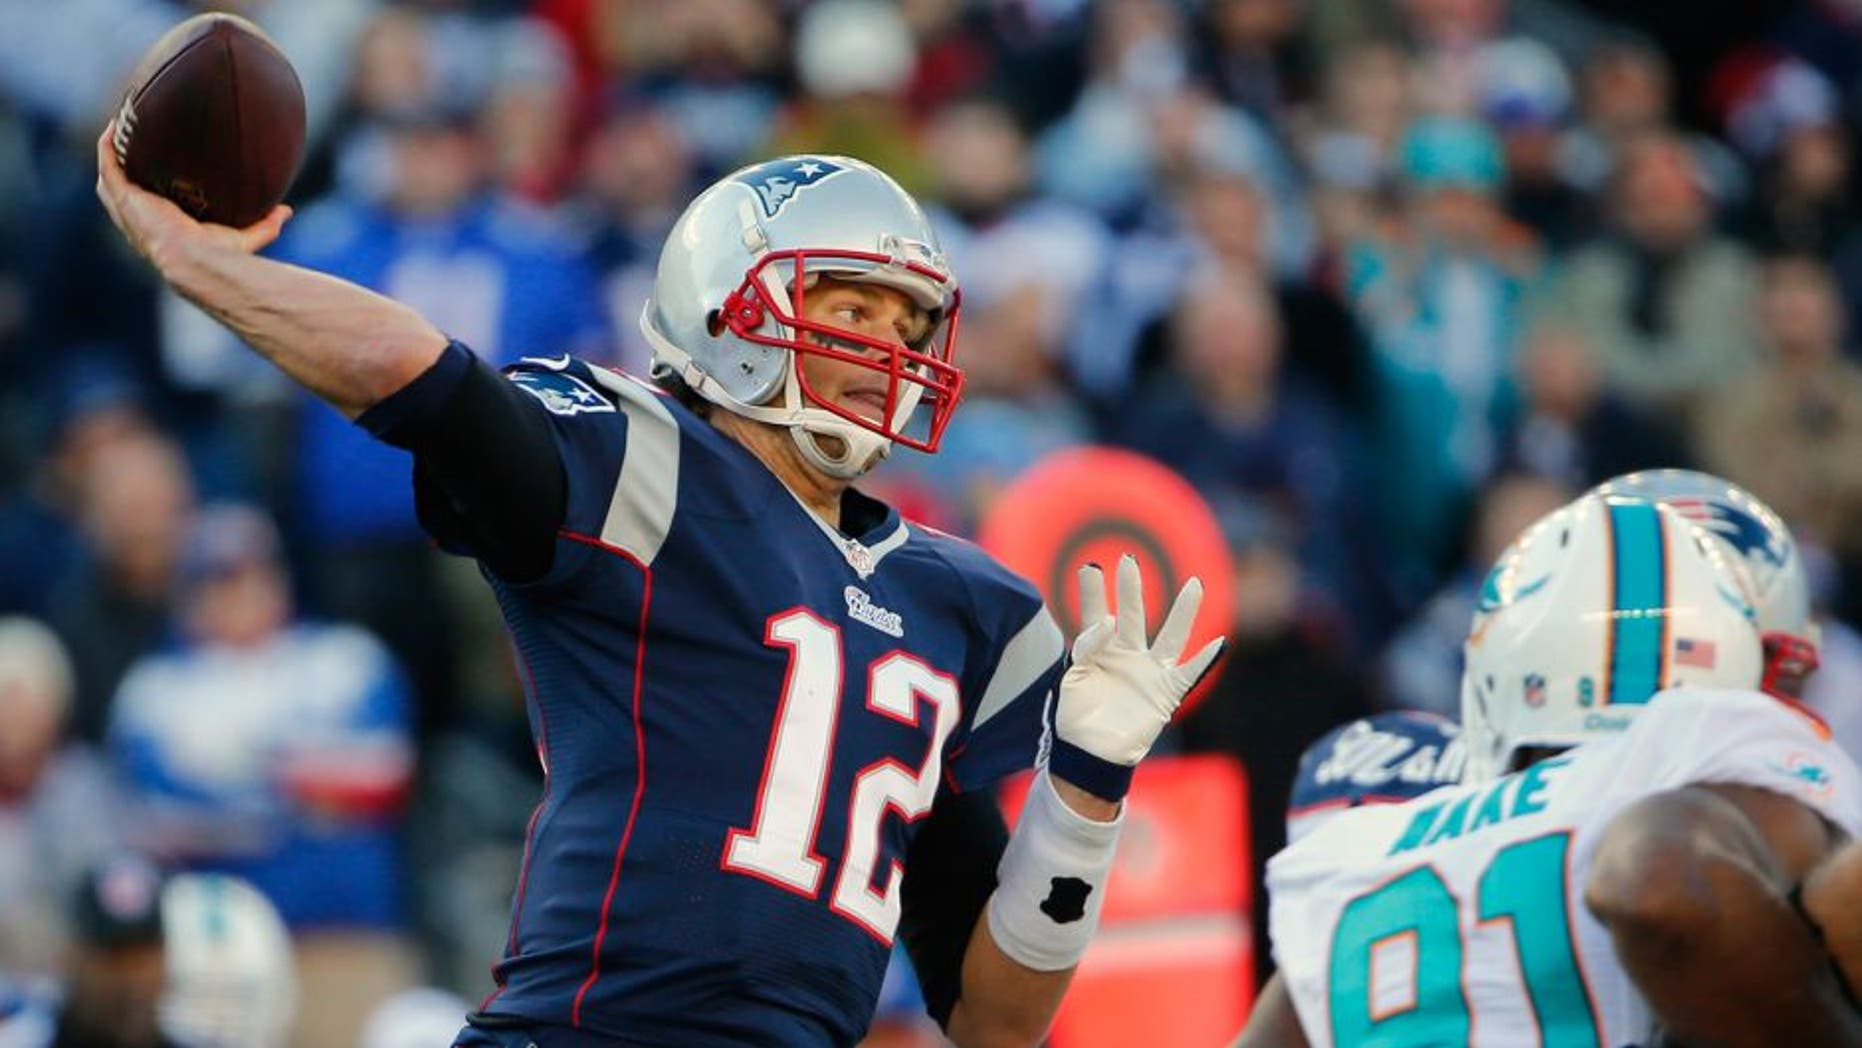 Dec 14, 2014; Foxborough, MA, USA; New England Patriots quarterback Tom Brady (12) throws the ball against the Miami Dolphins during the first half at Gillette Stadium. Mandatory Credit: Winslow Townson-USA TODAY Sports